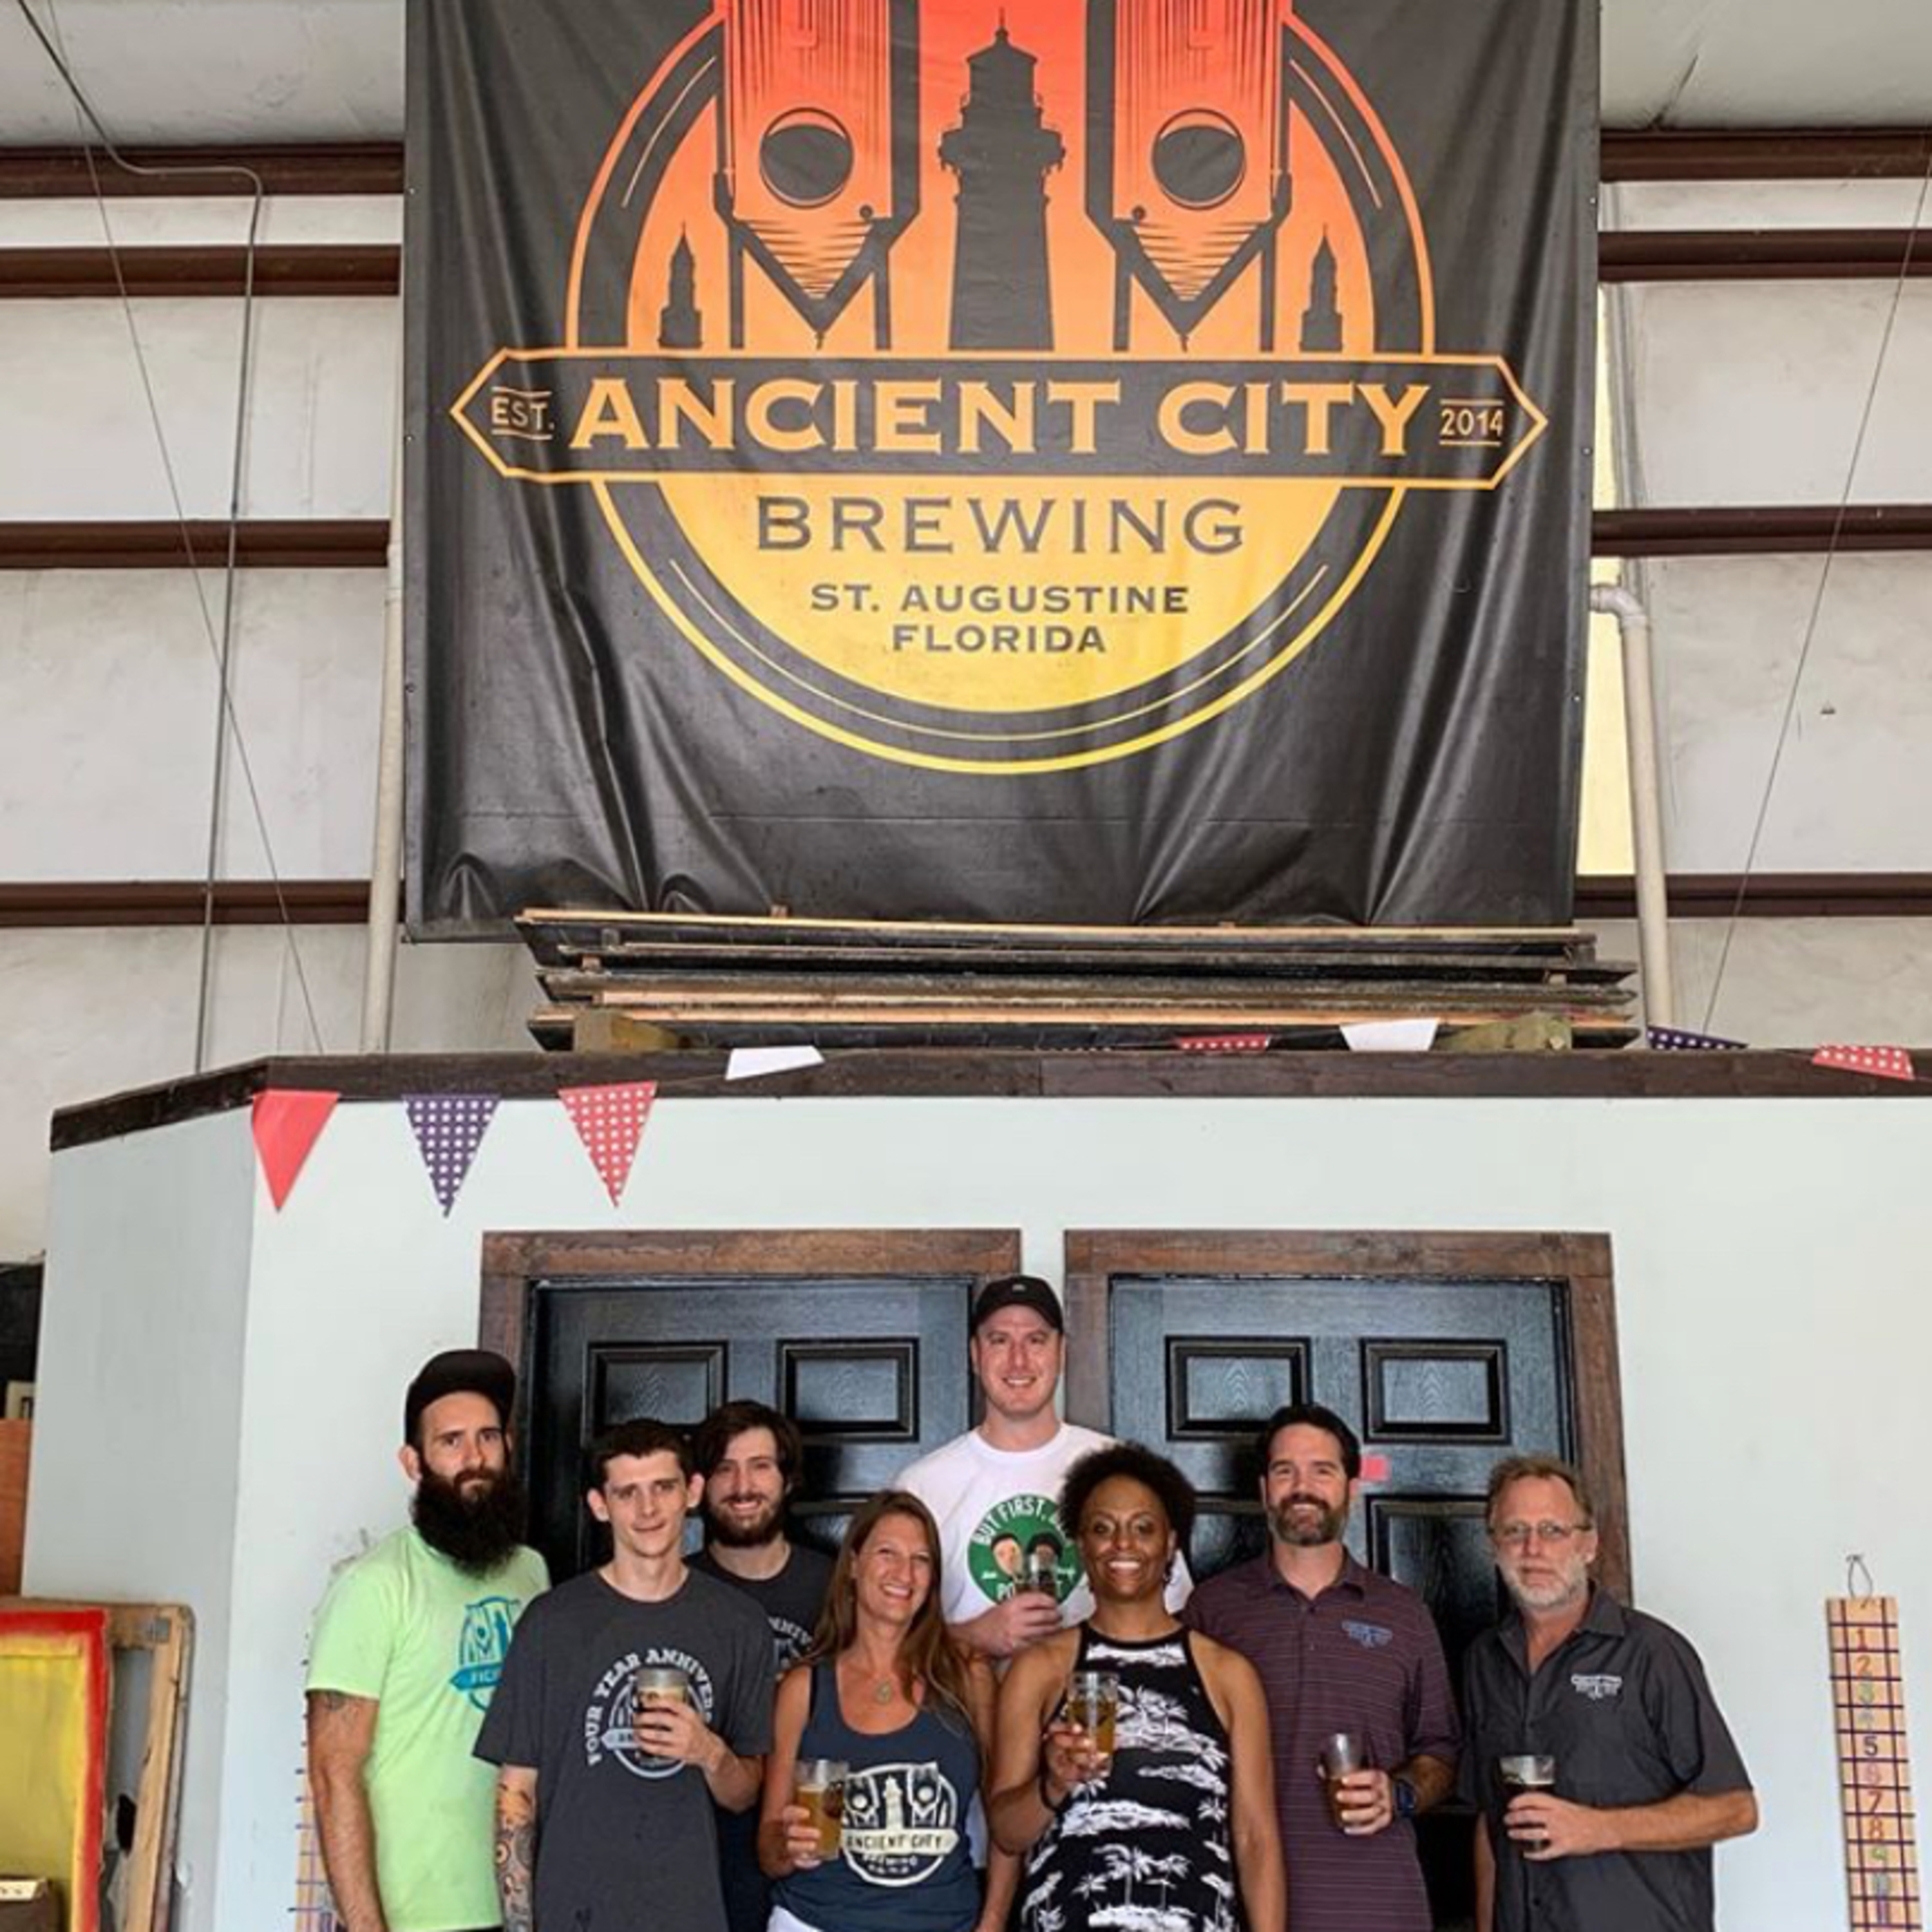 S02 E24 - Ancient City Brewing Co. - St. Augustine, FL